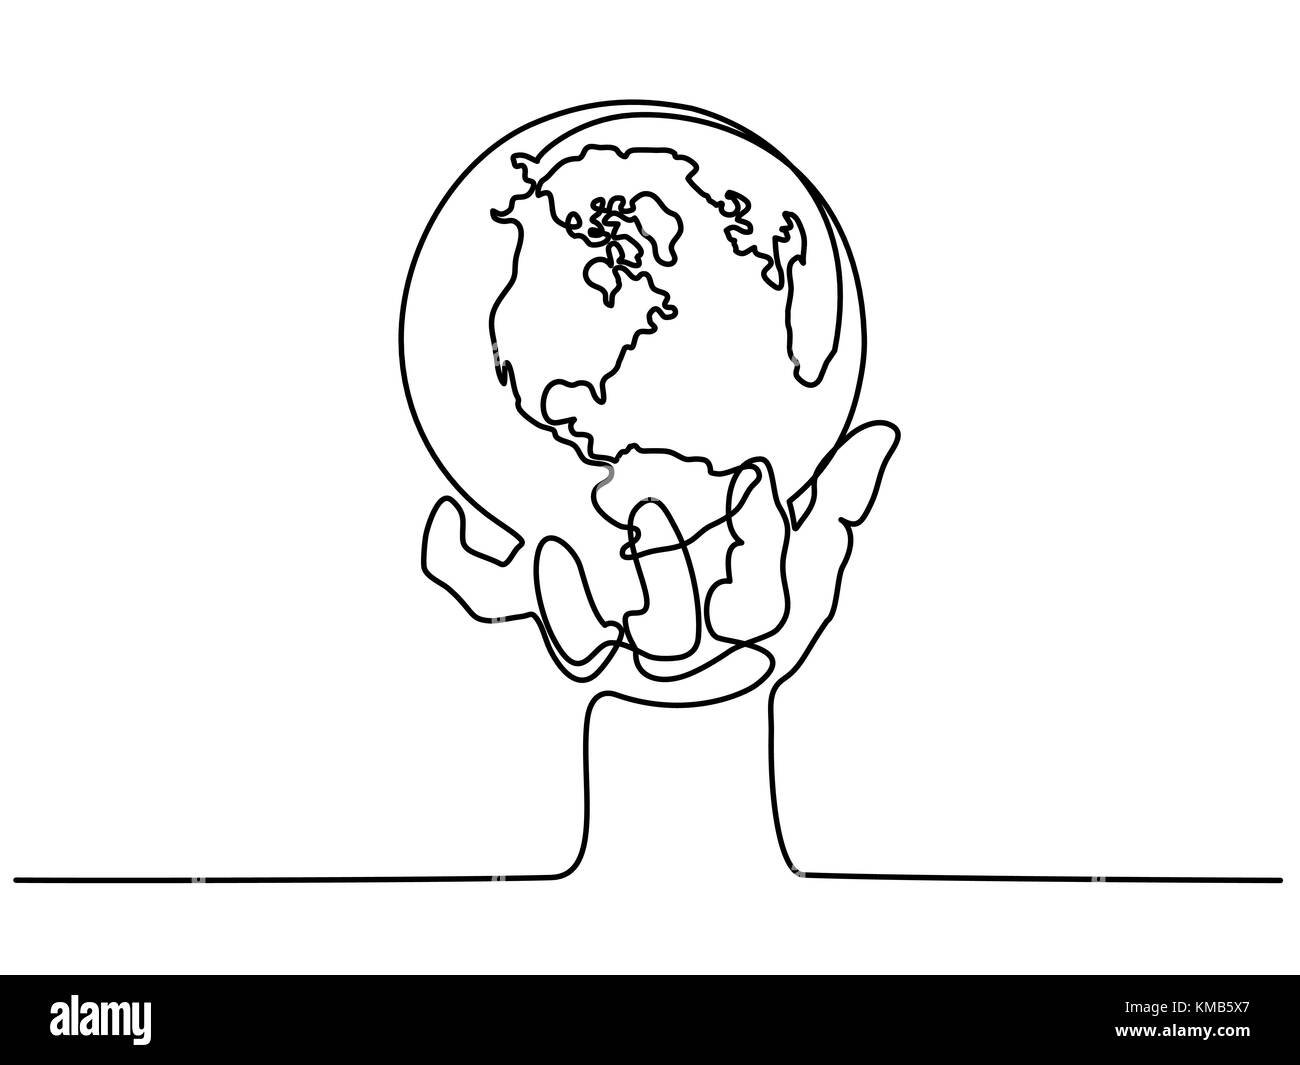 Globe of the Earth in human hand - Stock Image